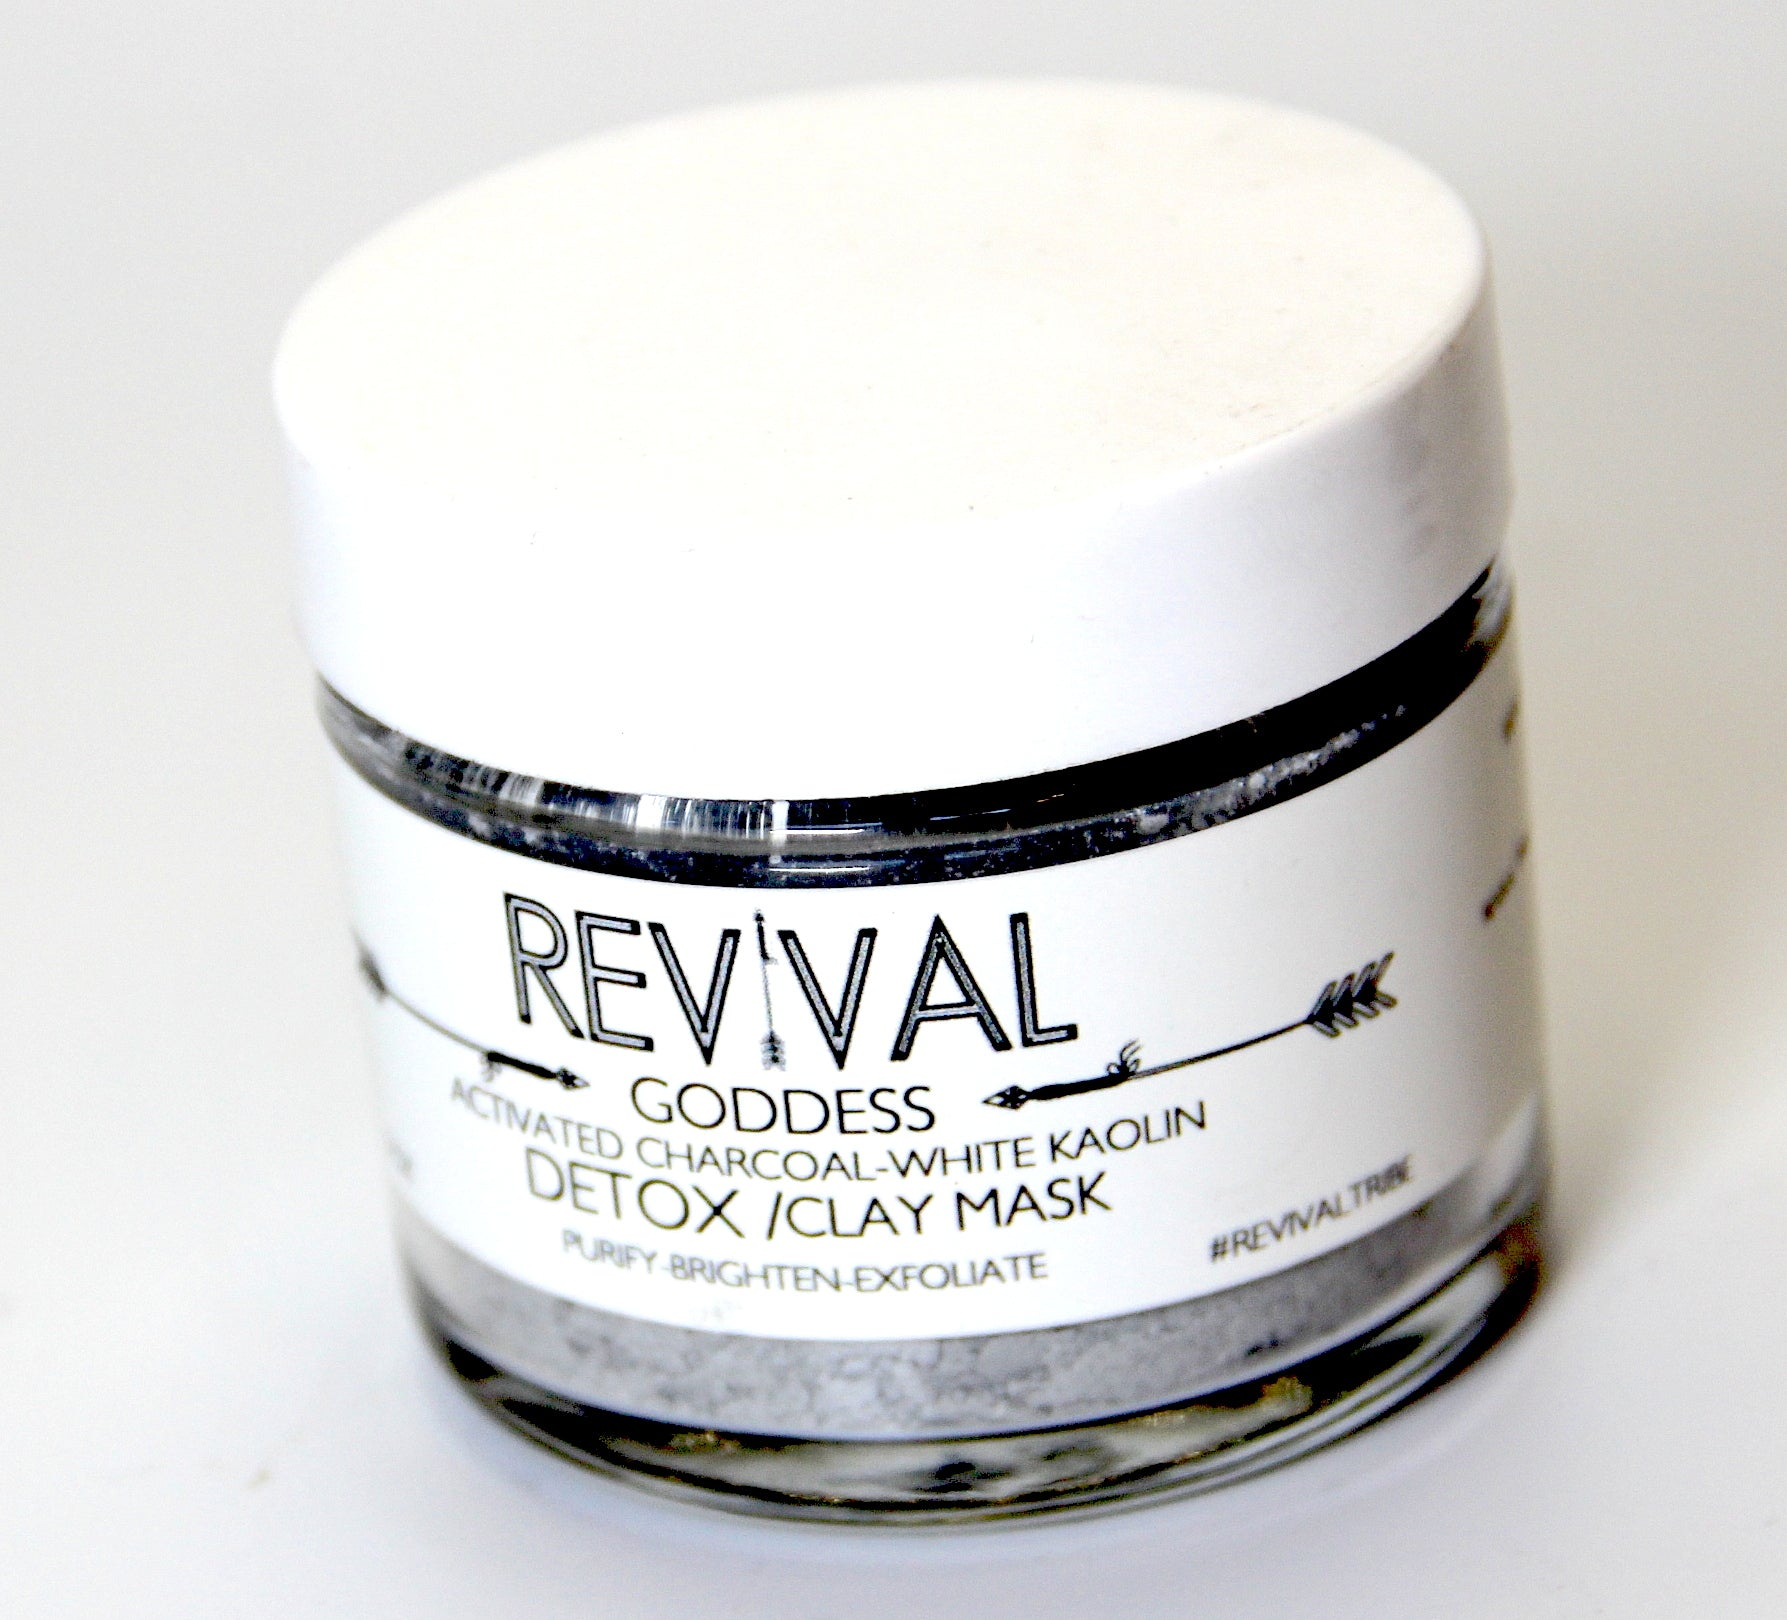 Revival Body Care - Goddess Clay Mask Detox